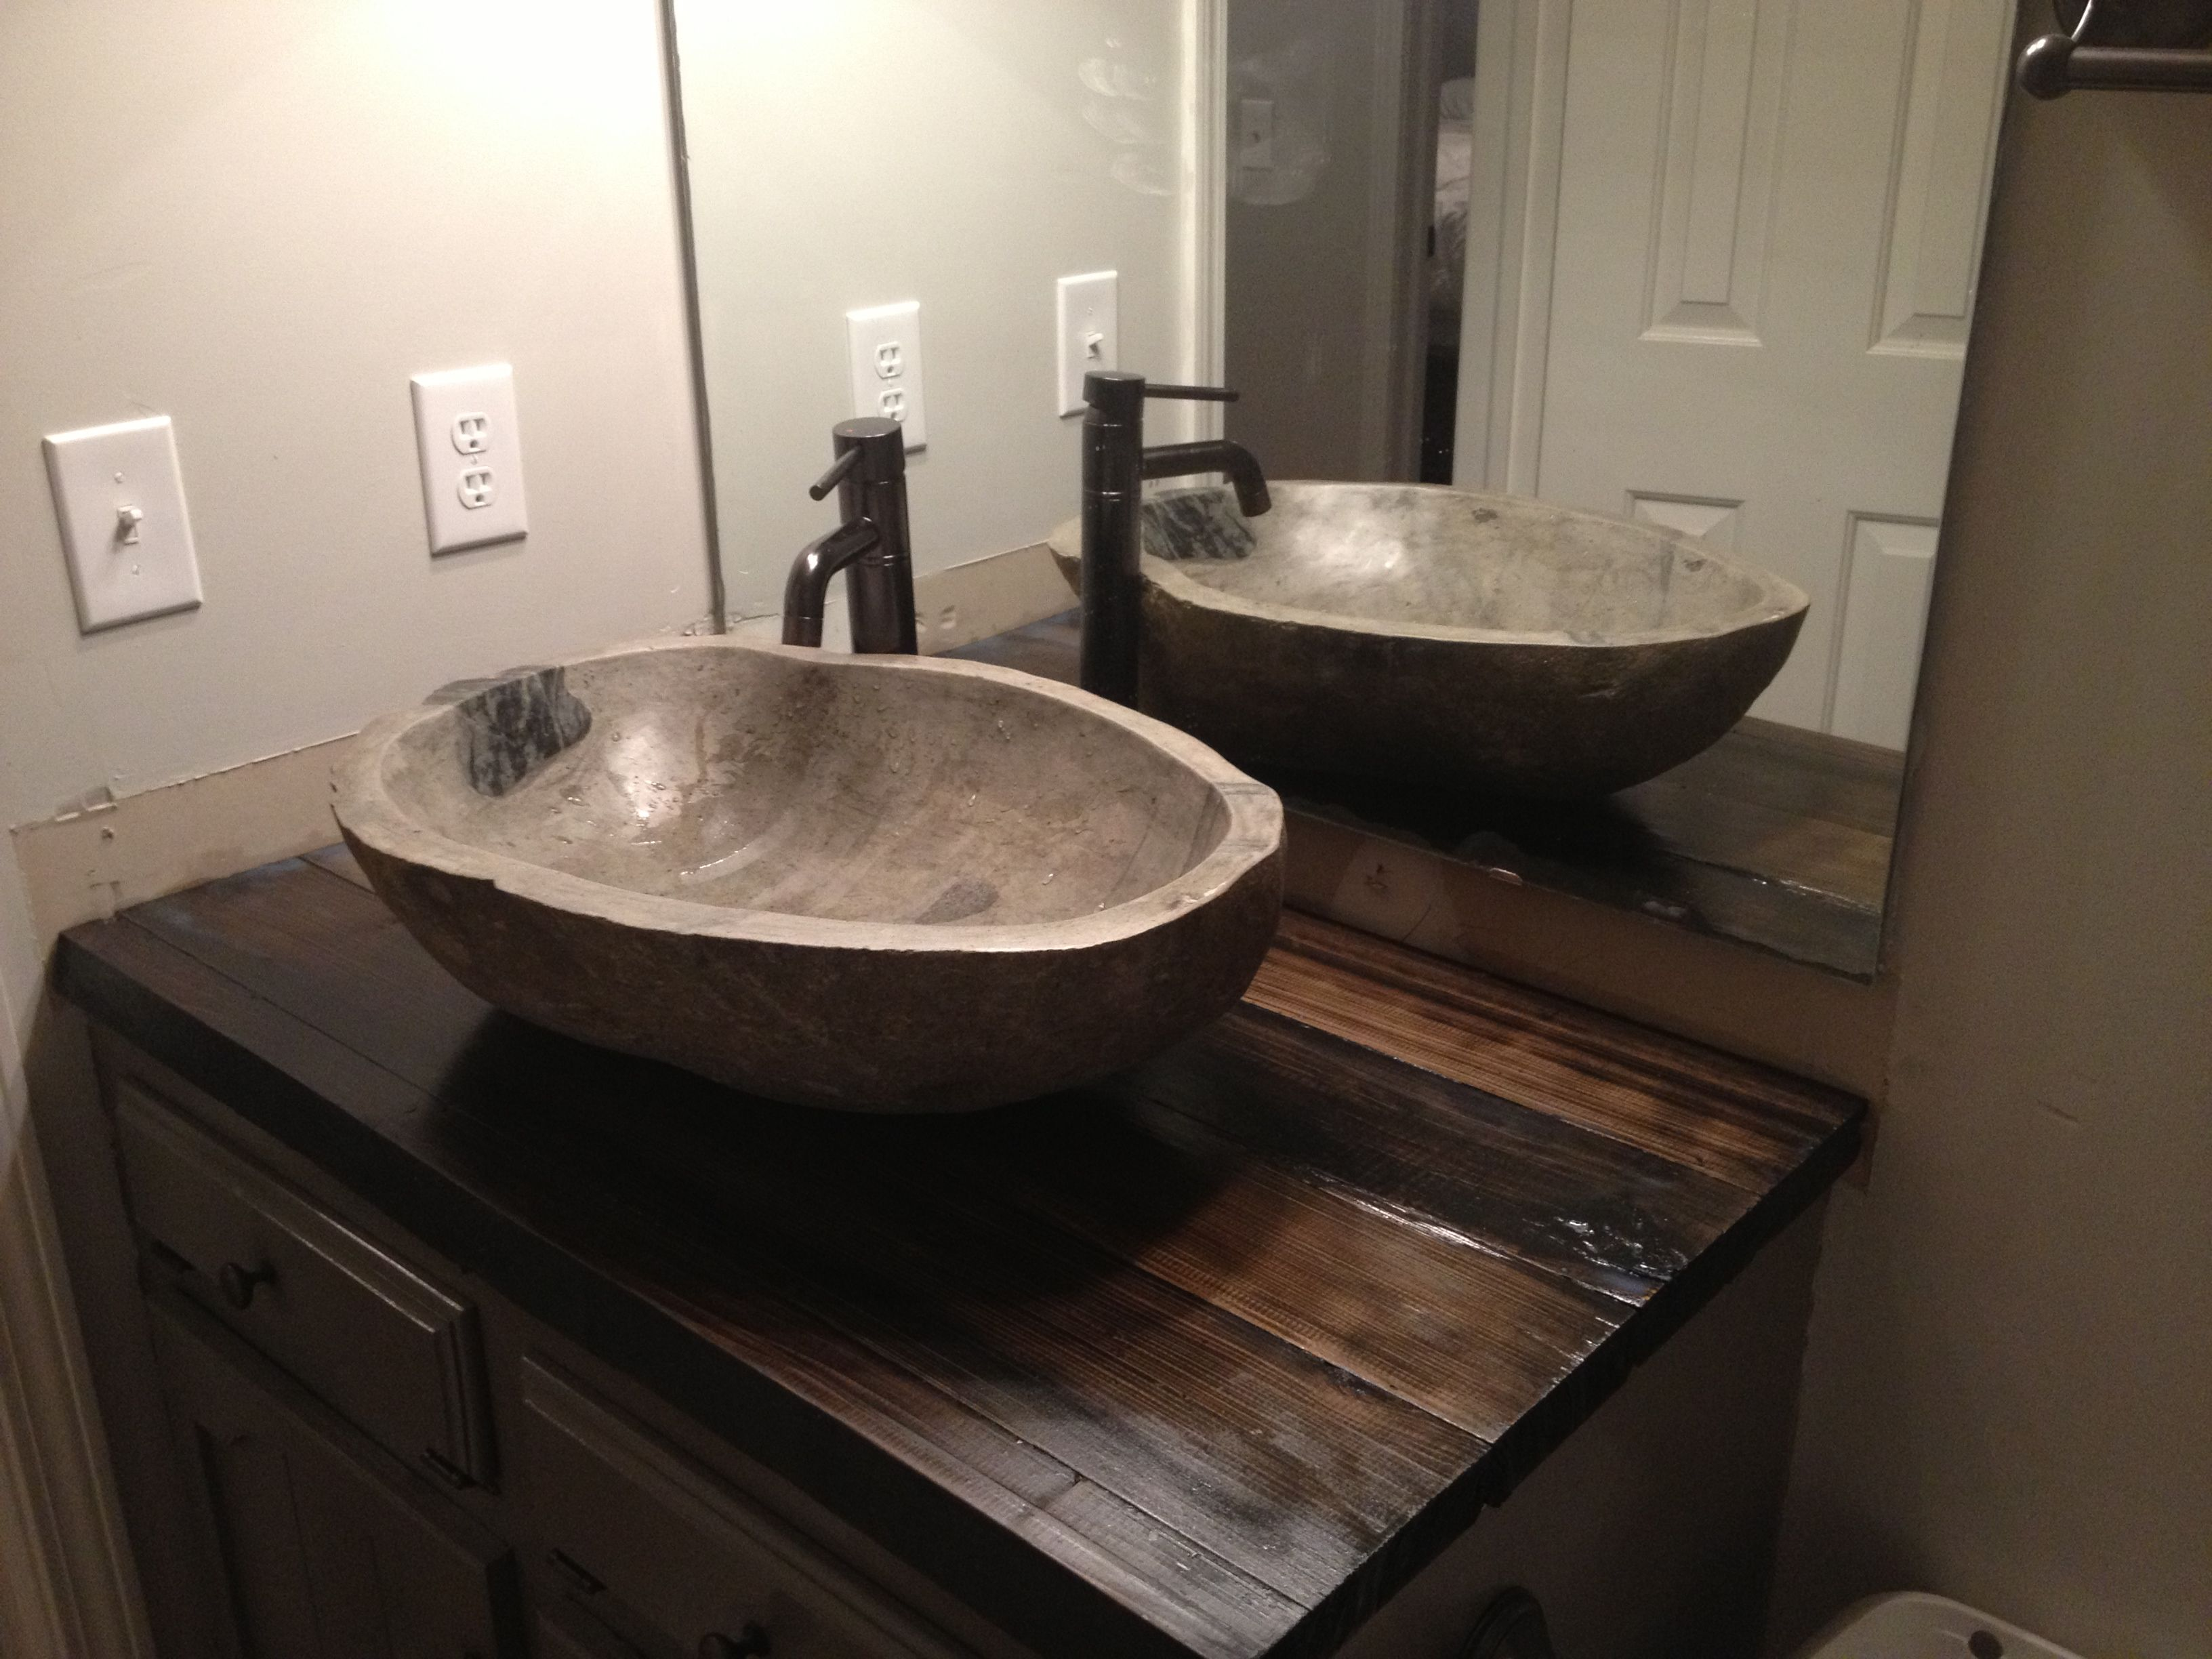 Real Stein Waschbecken Stone Vessel Sinks Stone Vessel Sinks Real Wood Counter Tops